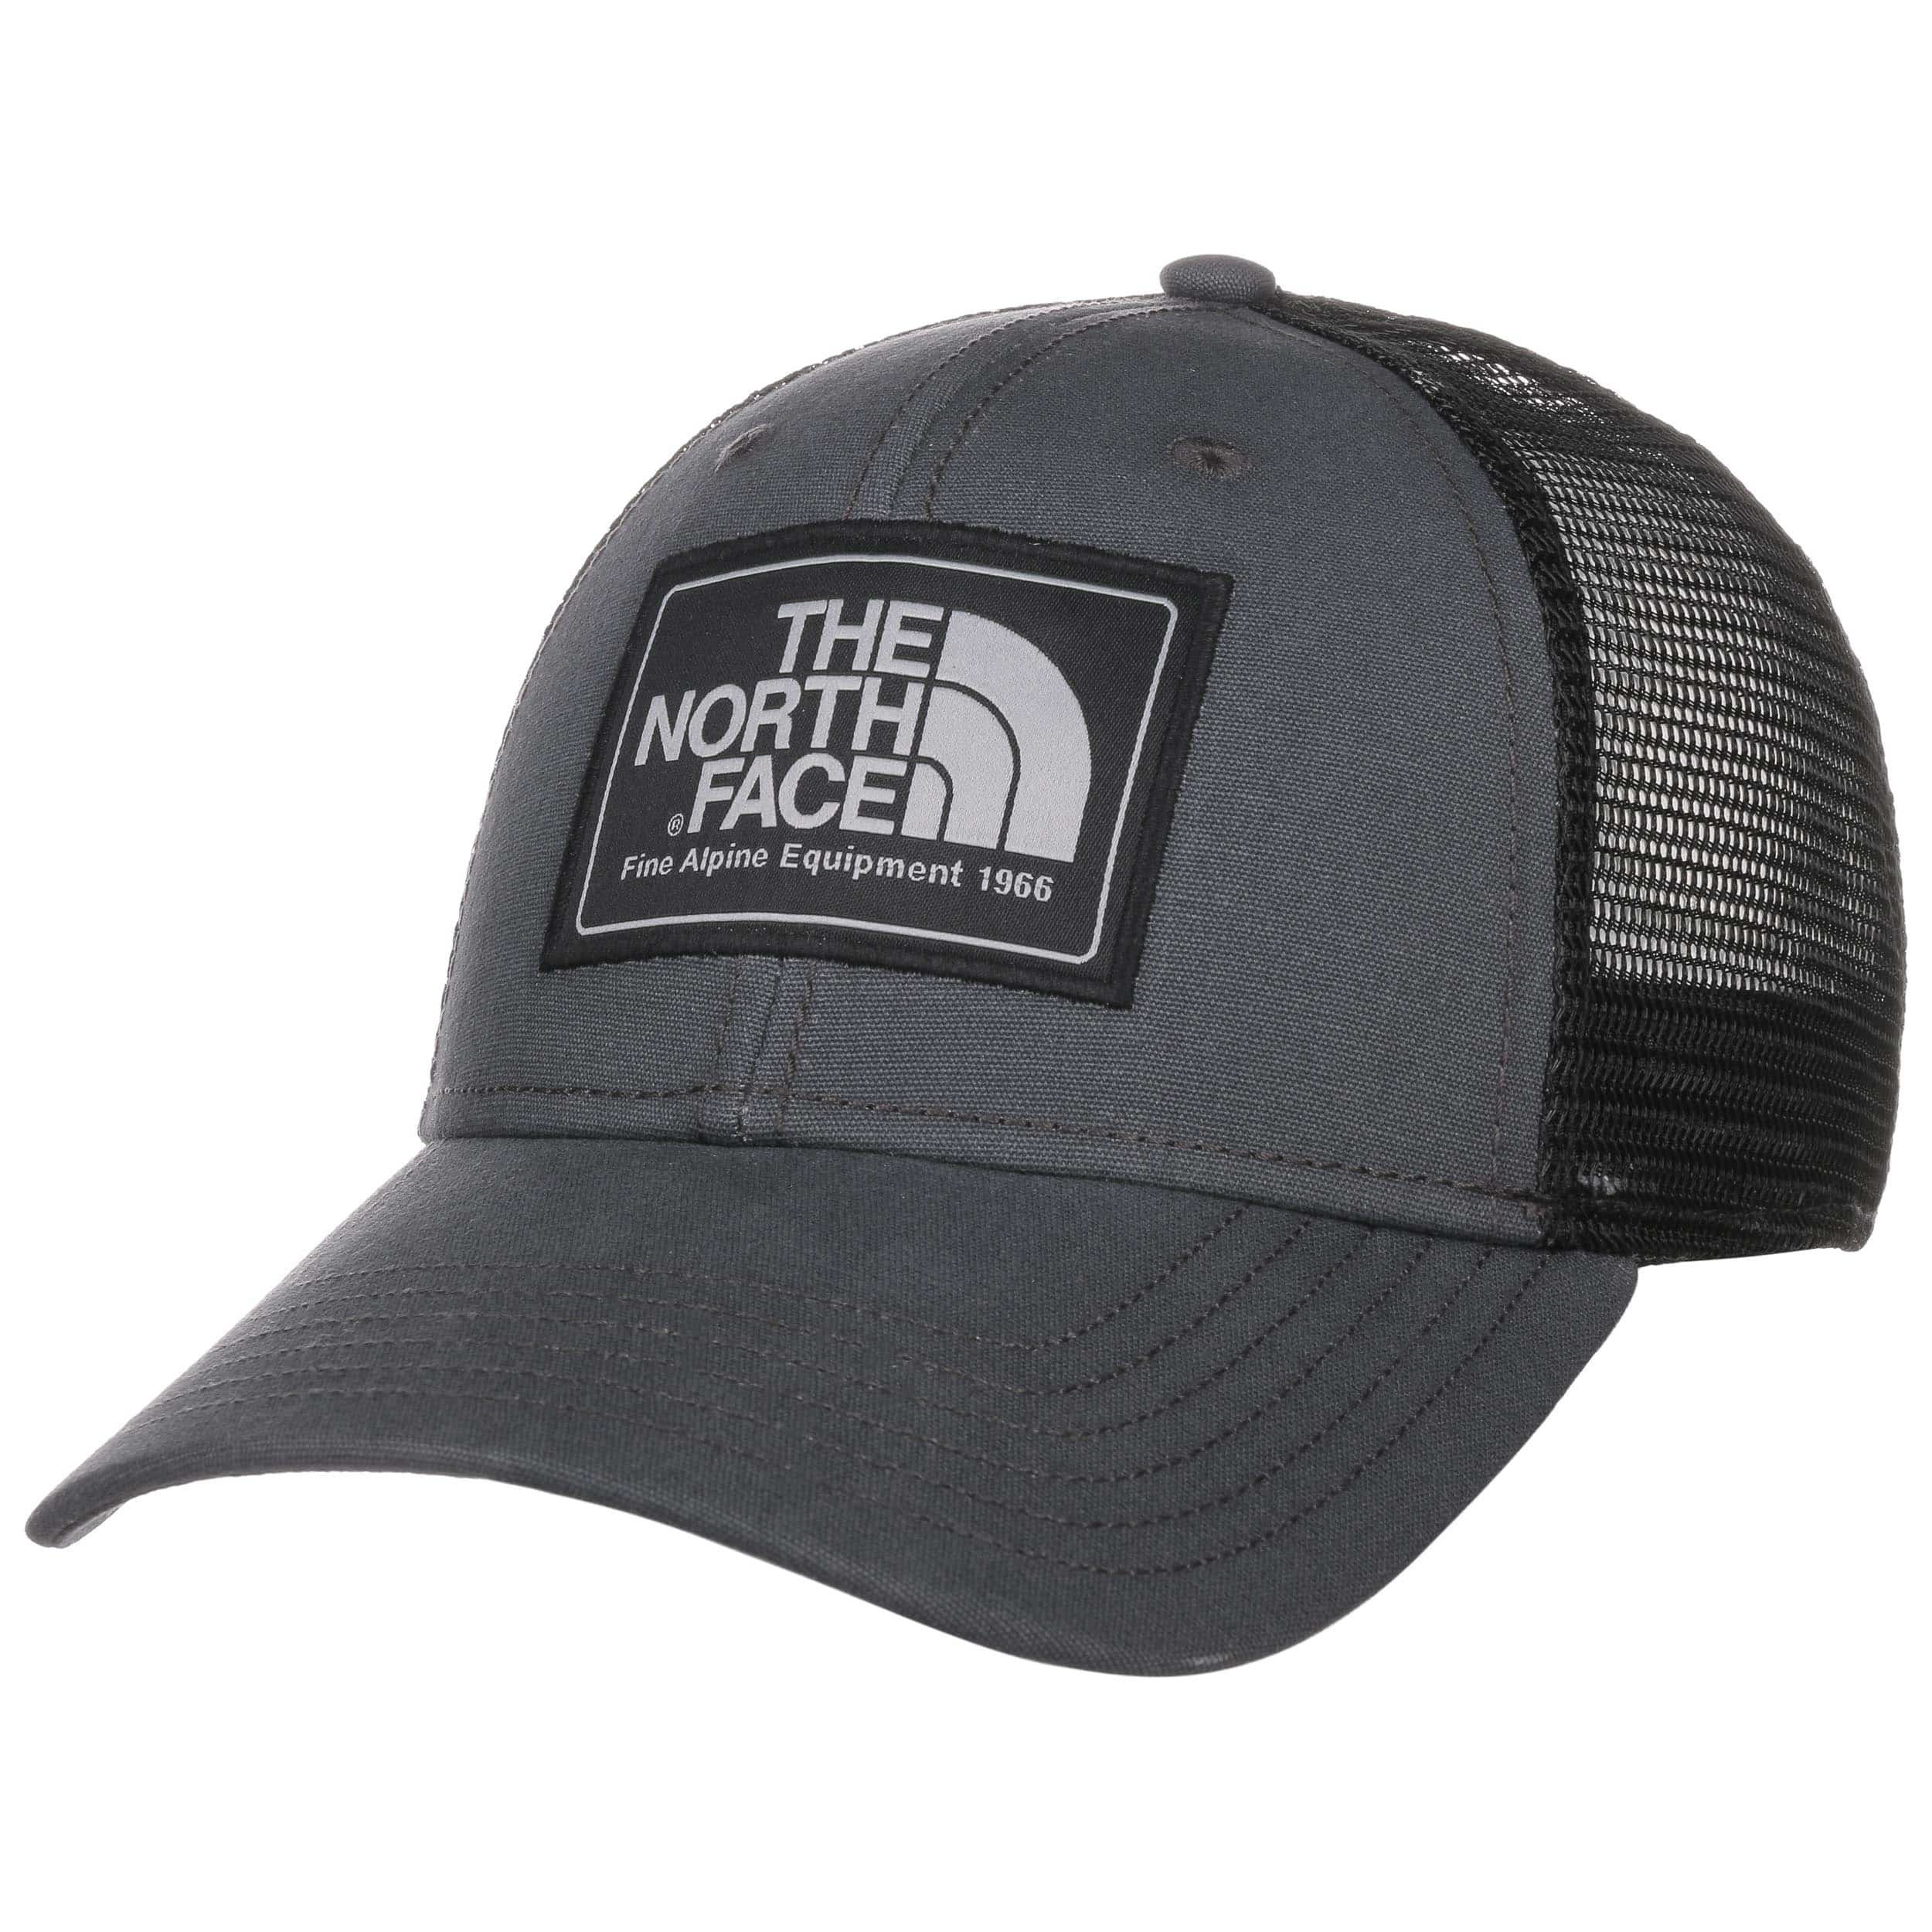 088eb98335 Casquette Trucker Mudder by The North Face, EUR 29,95 --> Chapeaux ...